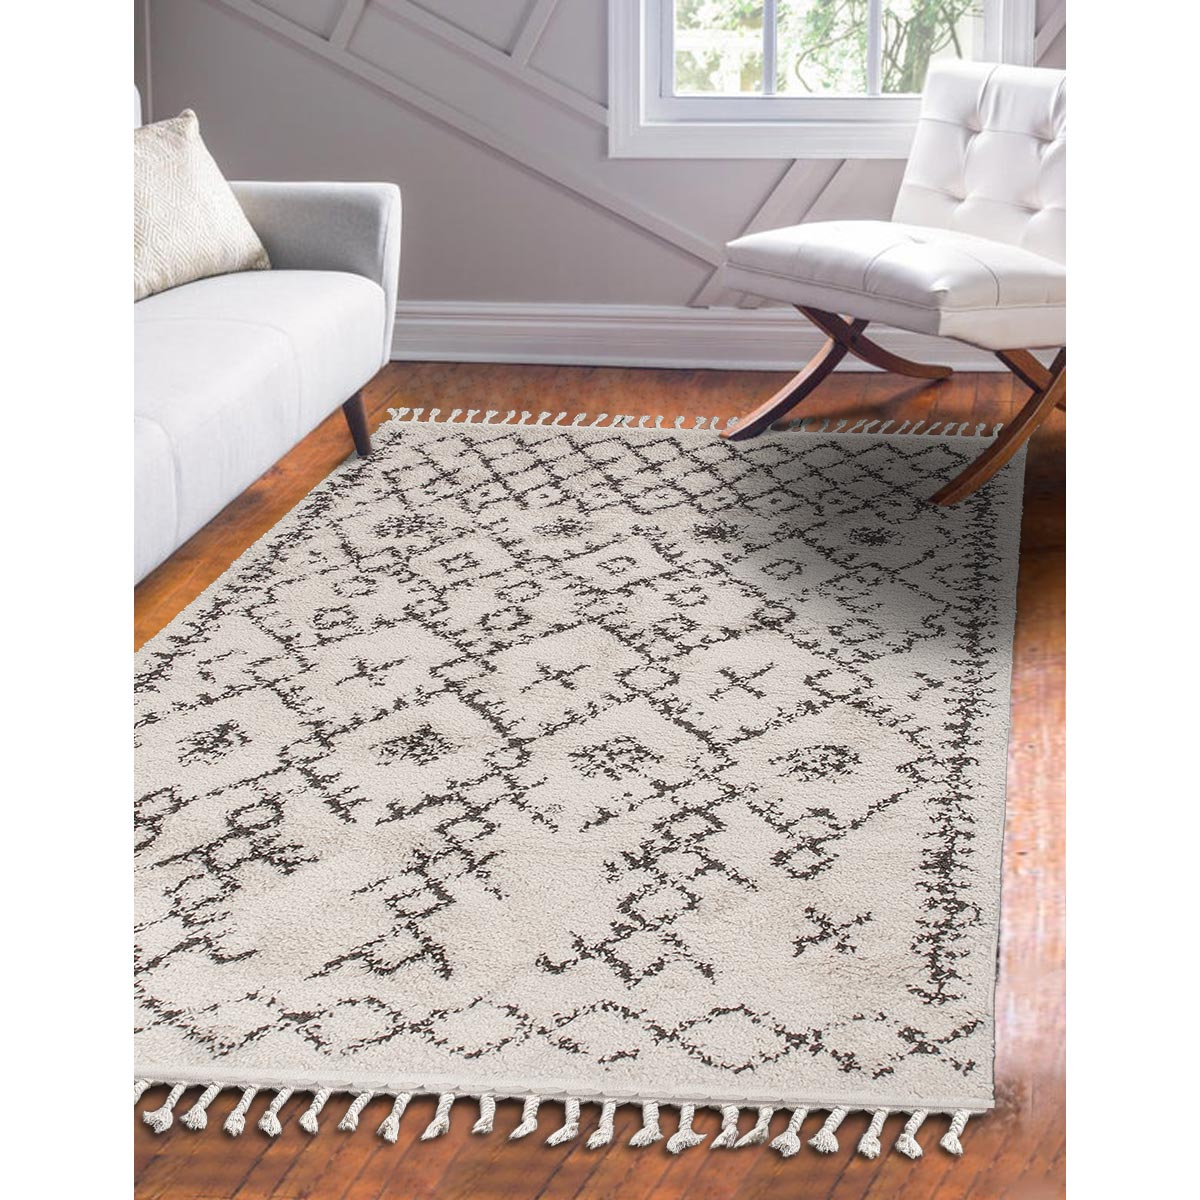 Shaggy Marrakech Rug 06 Cream/Black 2